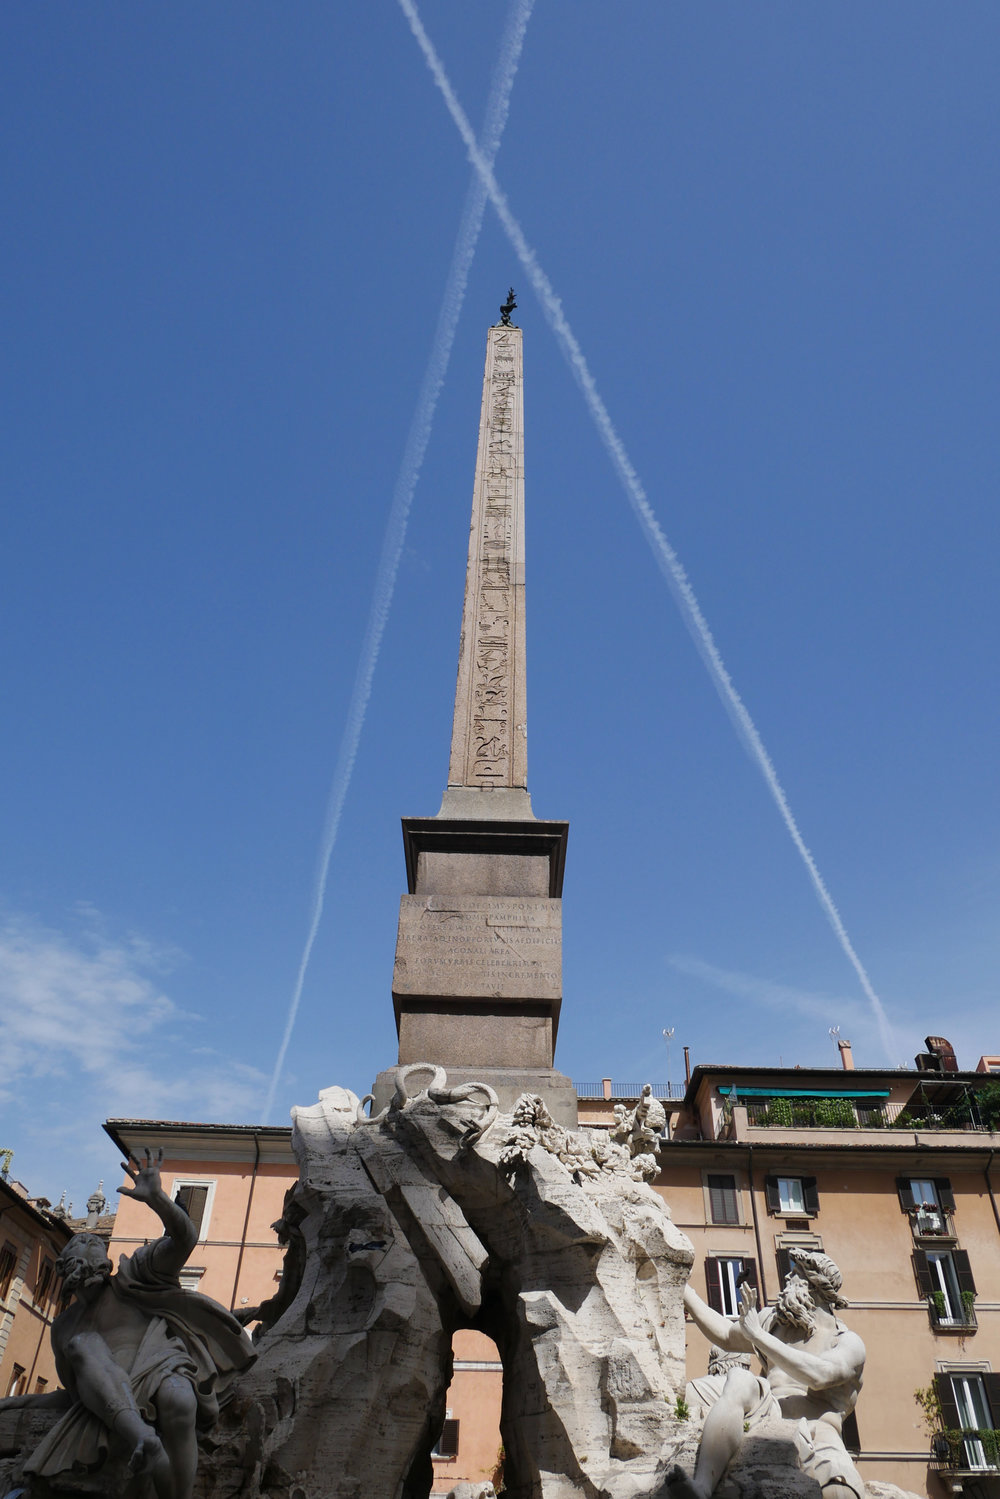 Egyptian-obelisk-Four-Rivers-Fountain-Piazza-Navona-Rome.jpg